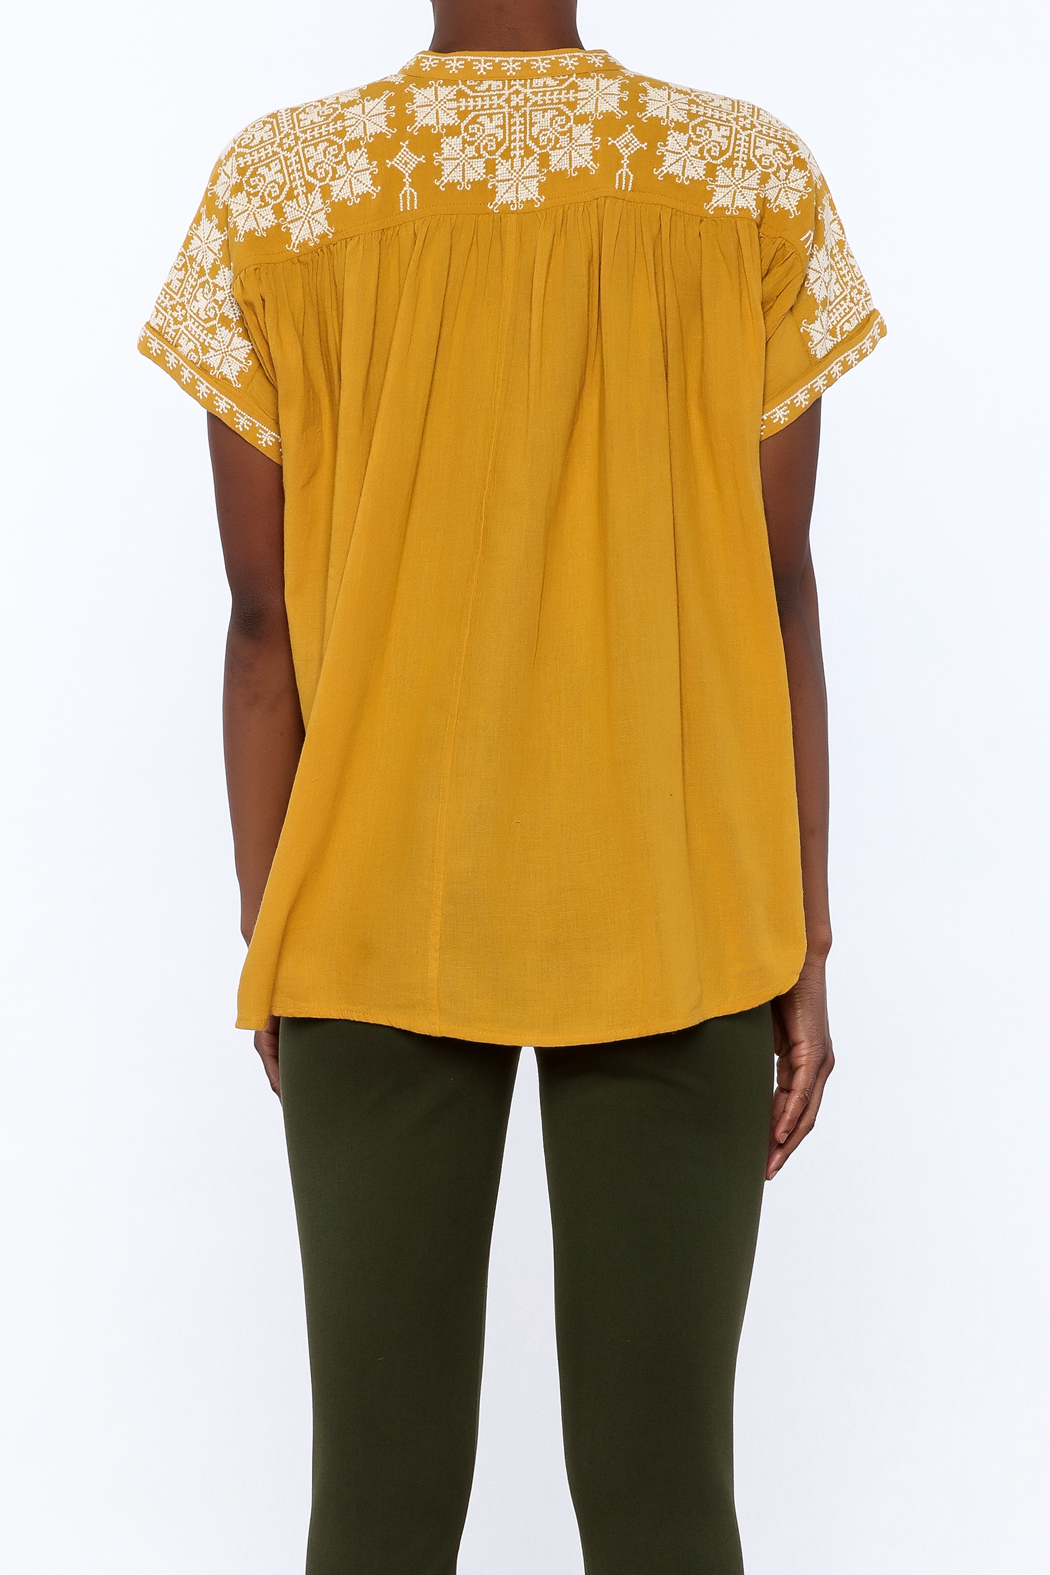 Star Mela Mustard Peasant Blouse - Back Cropped Image